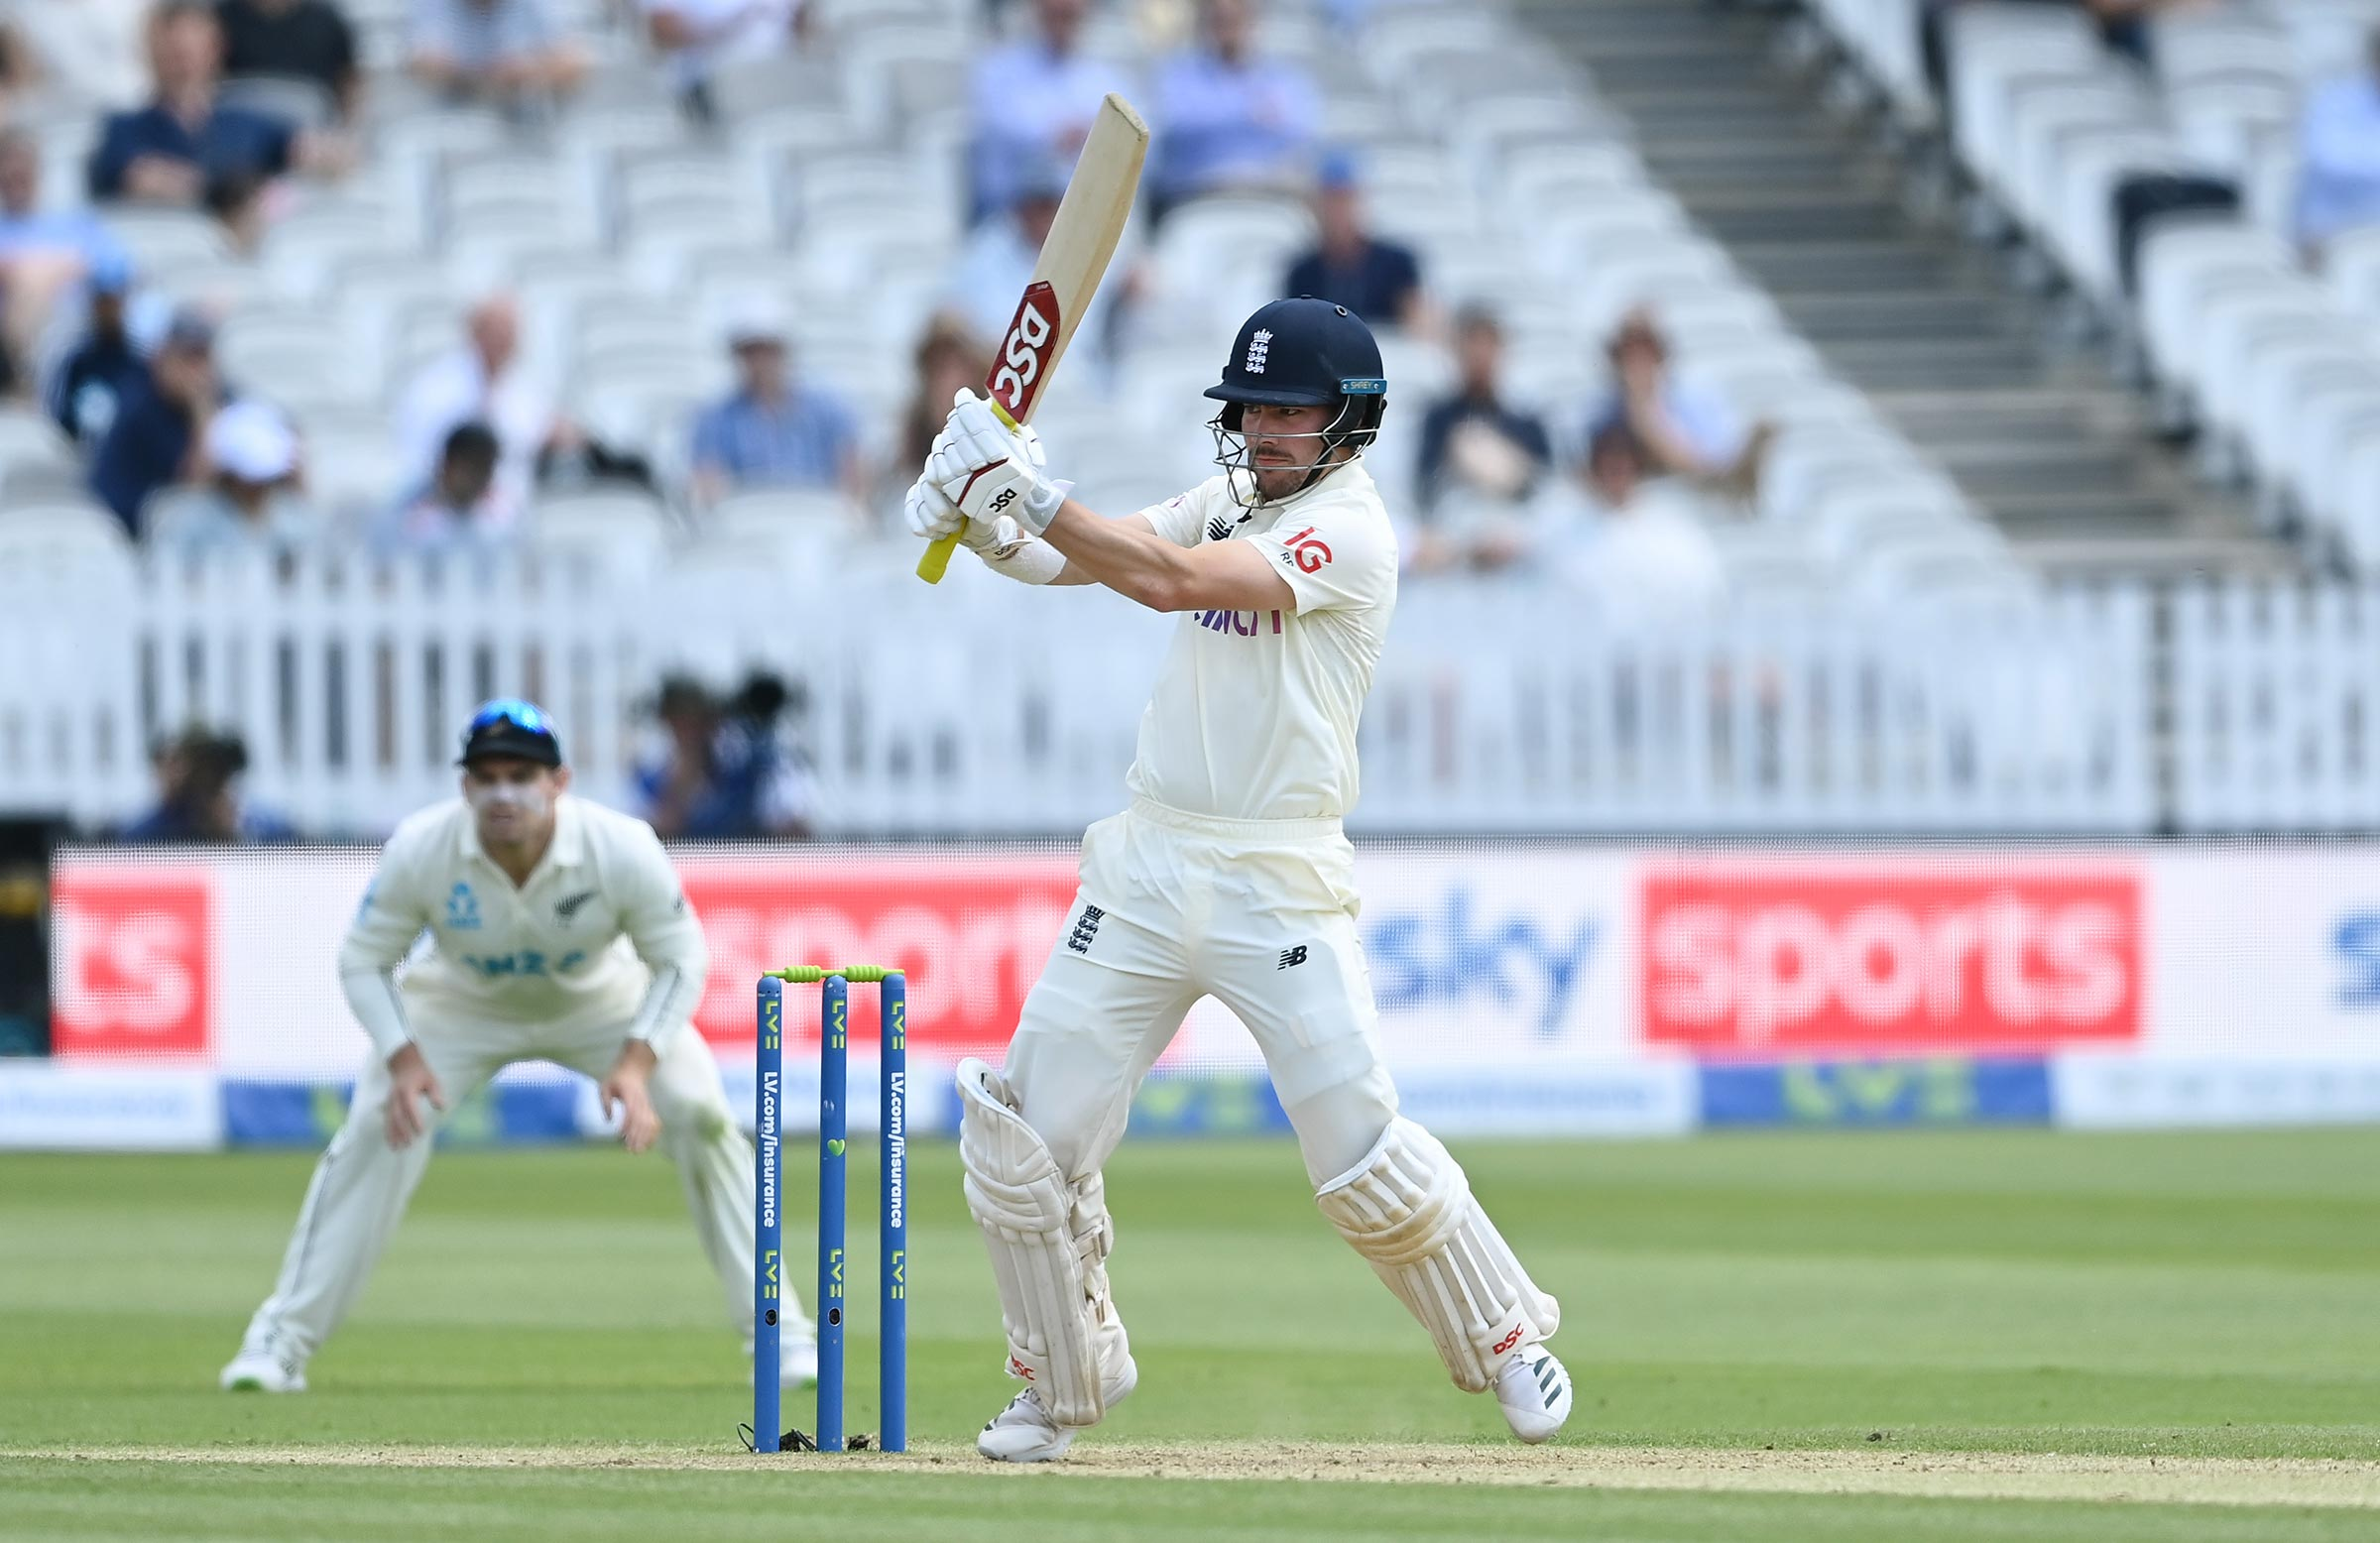 Burns went on the attack after reaching three figures // Getty